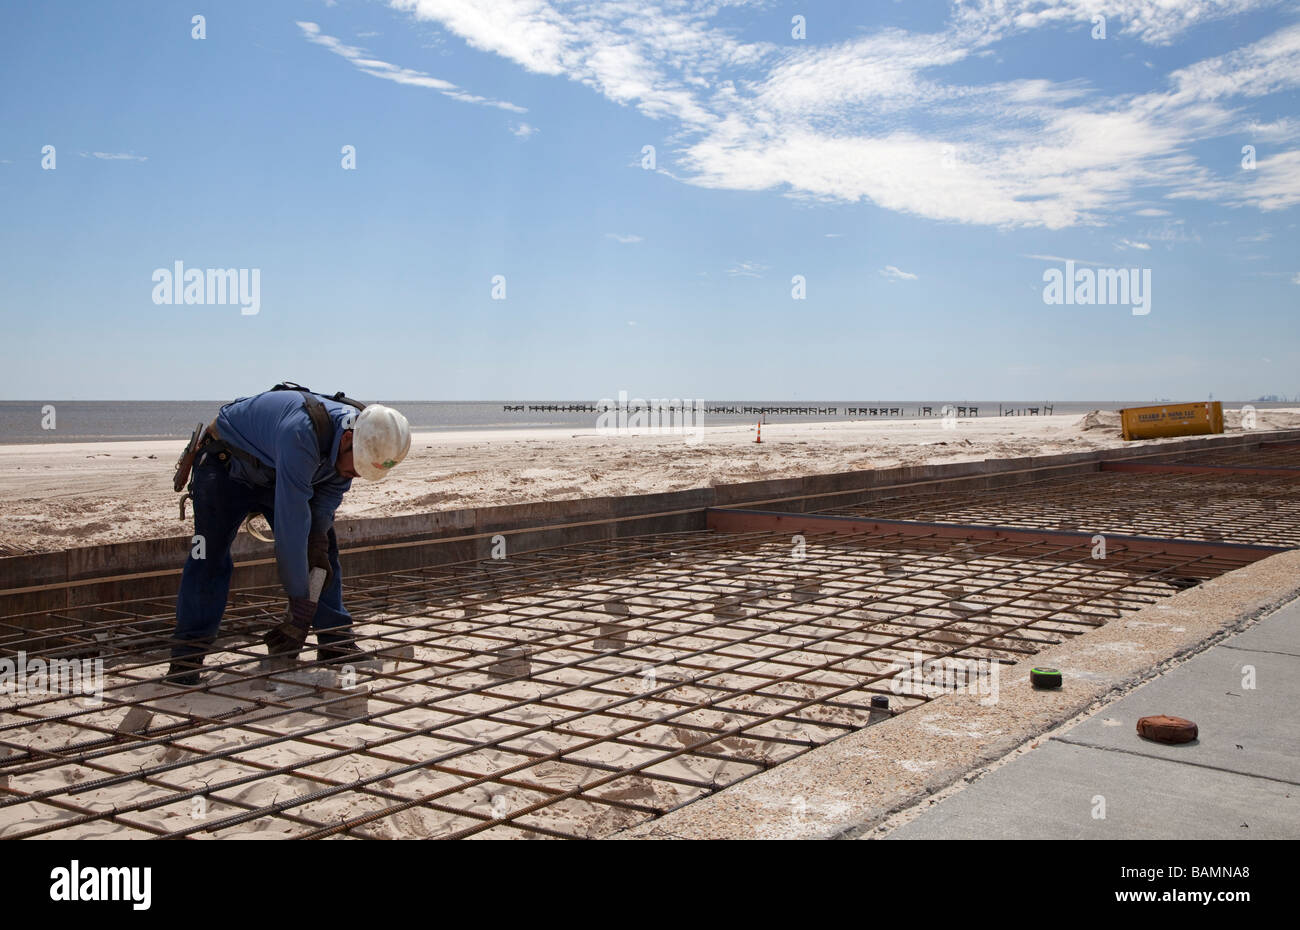 Workers Rebuild Boardwalk Destroyed by Hurricane Katrina - Stock Image